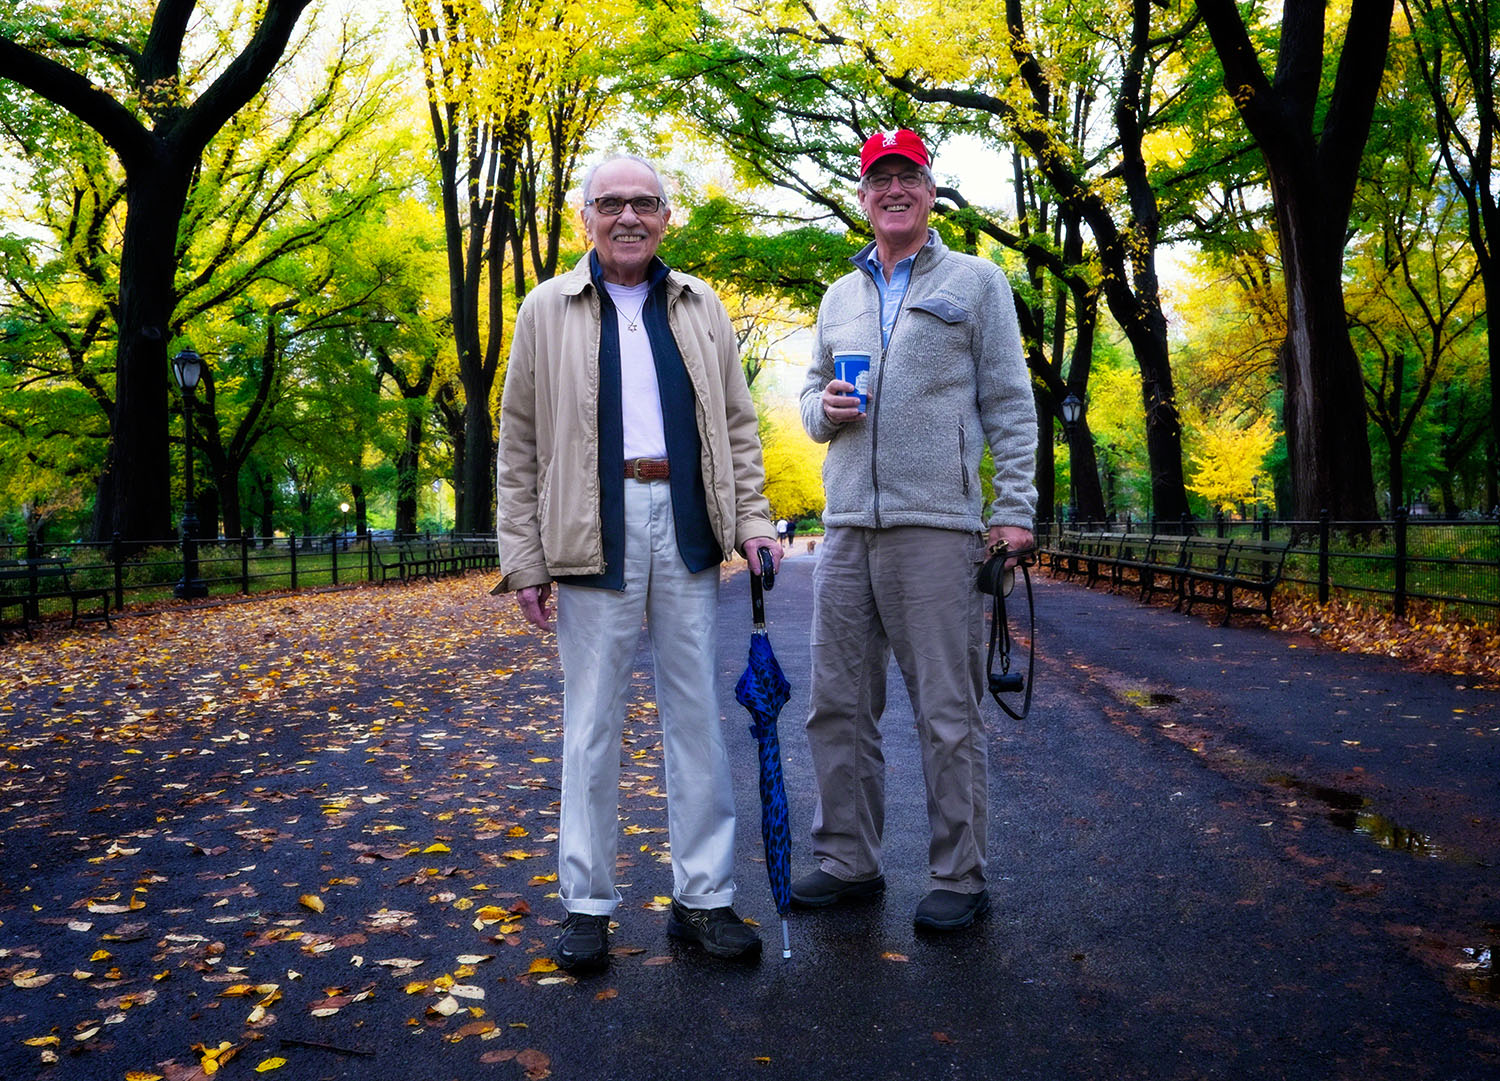 Paul Loeb & Bryan Oliphant in Central Park